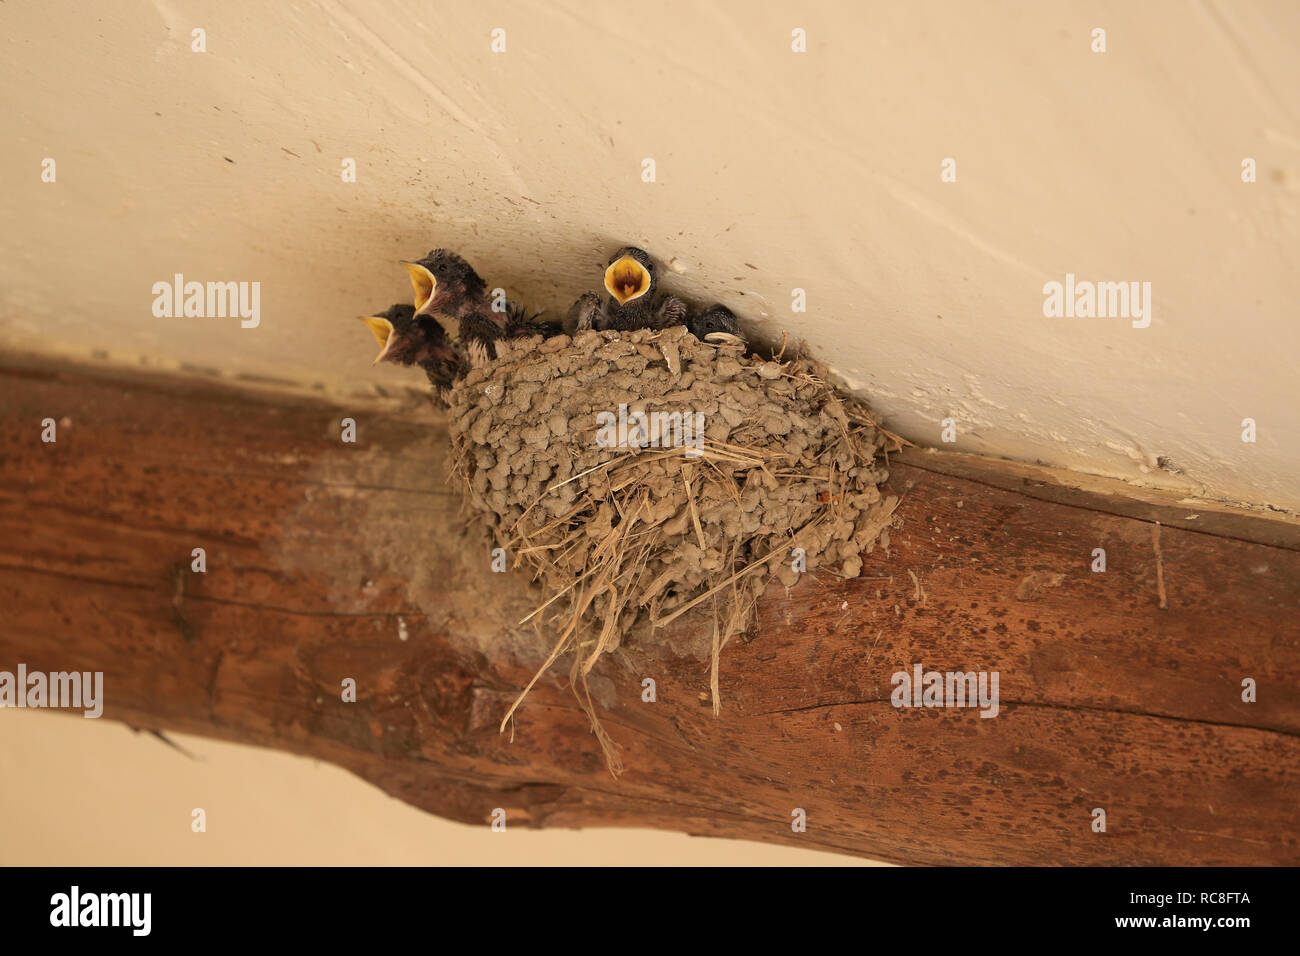 Tiny, baby, Swallow chicks with open mouths (beaks) in nest being fed by parent. Stock Photo